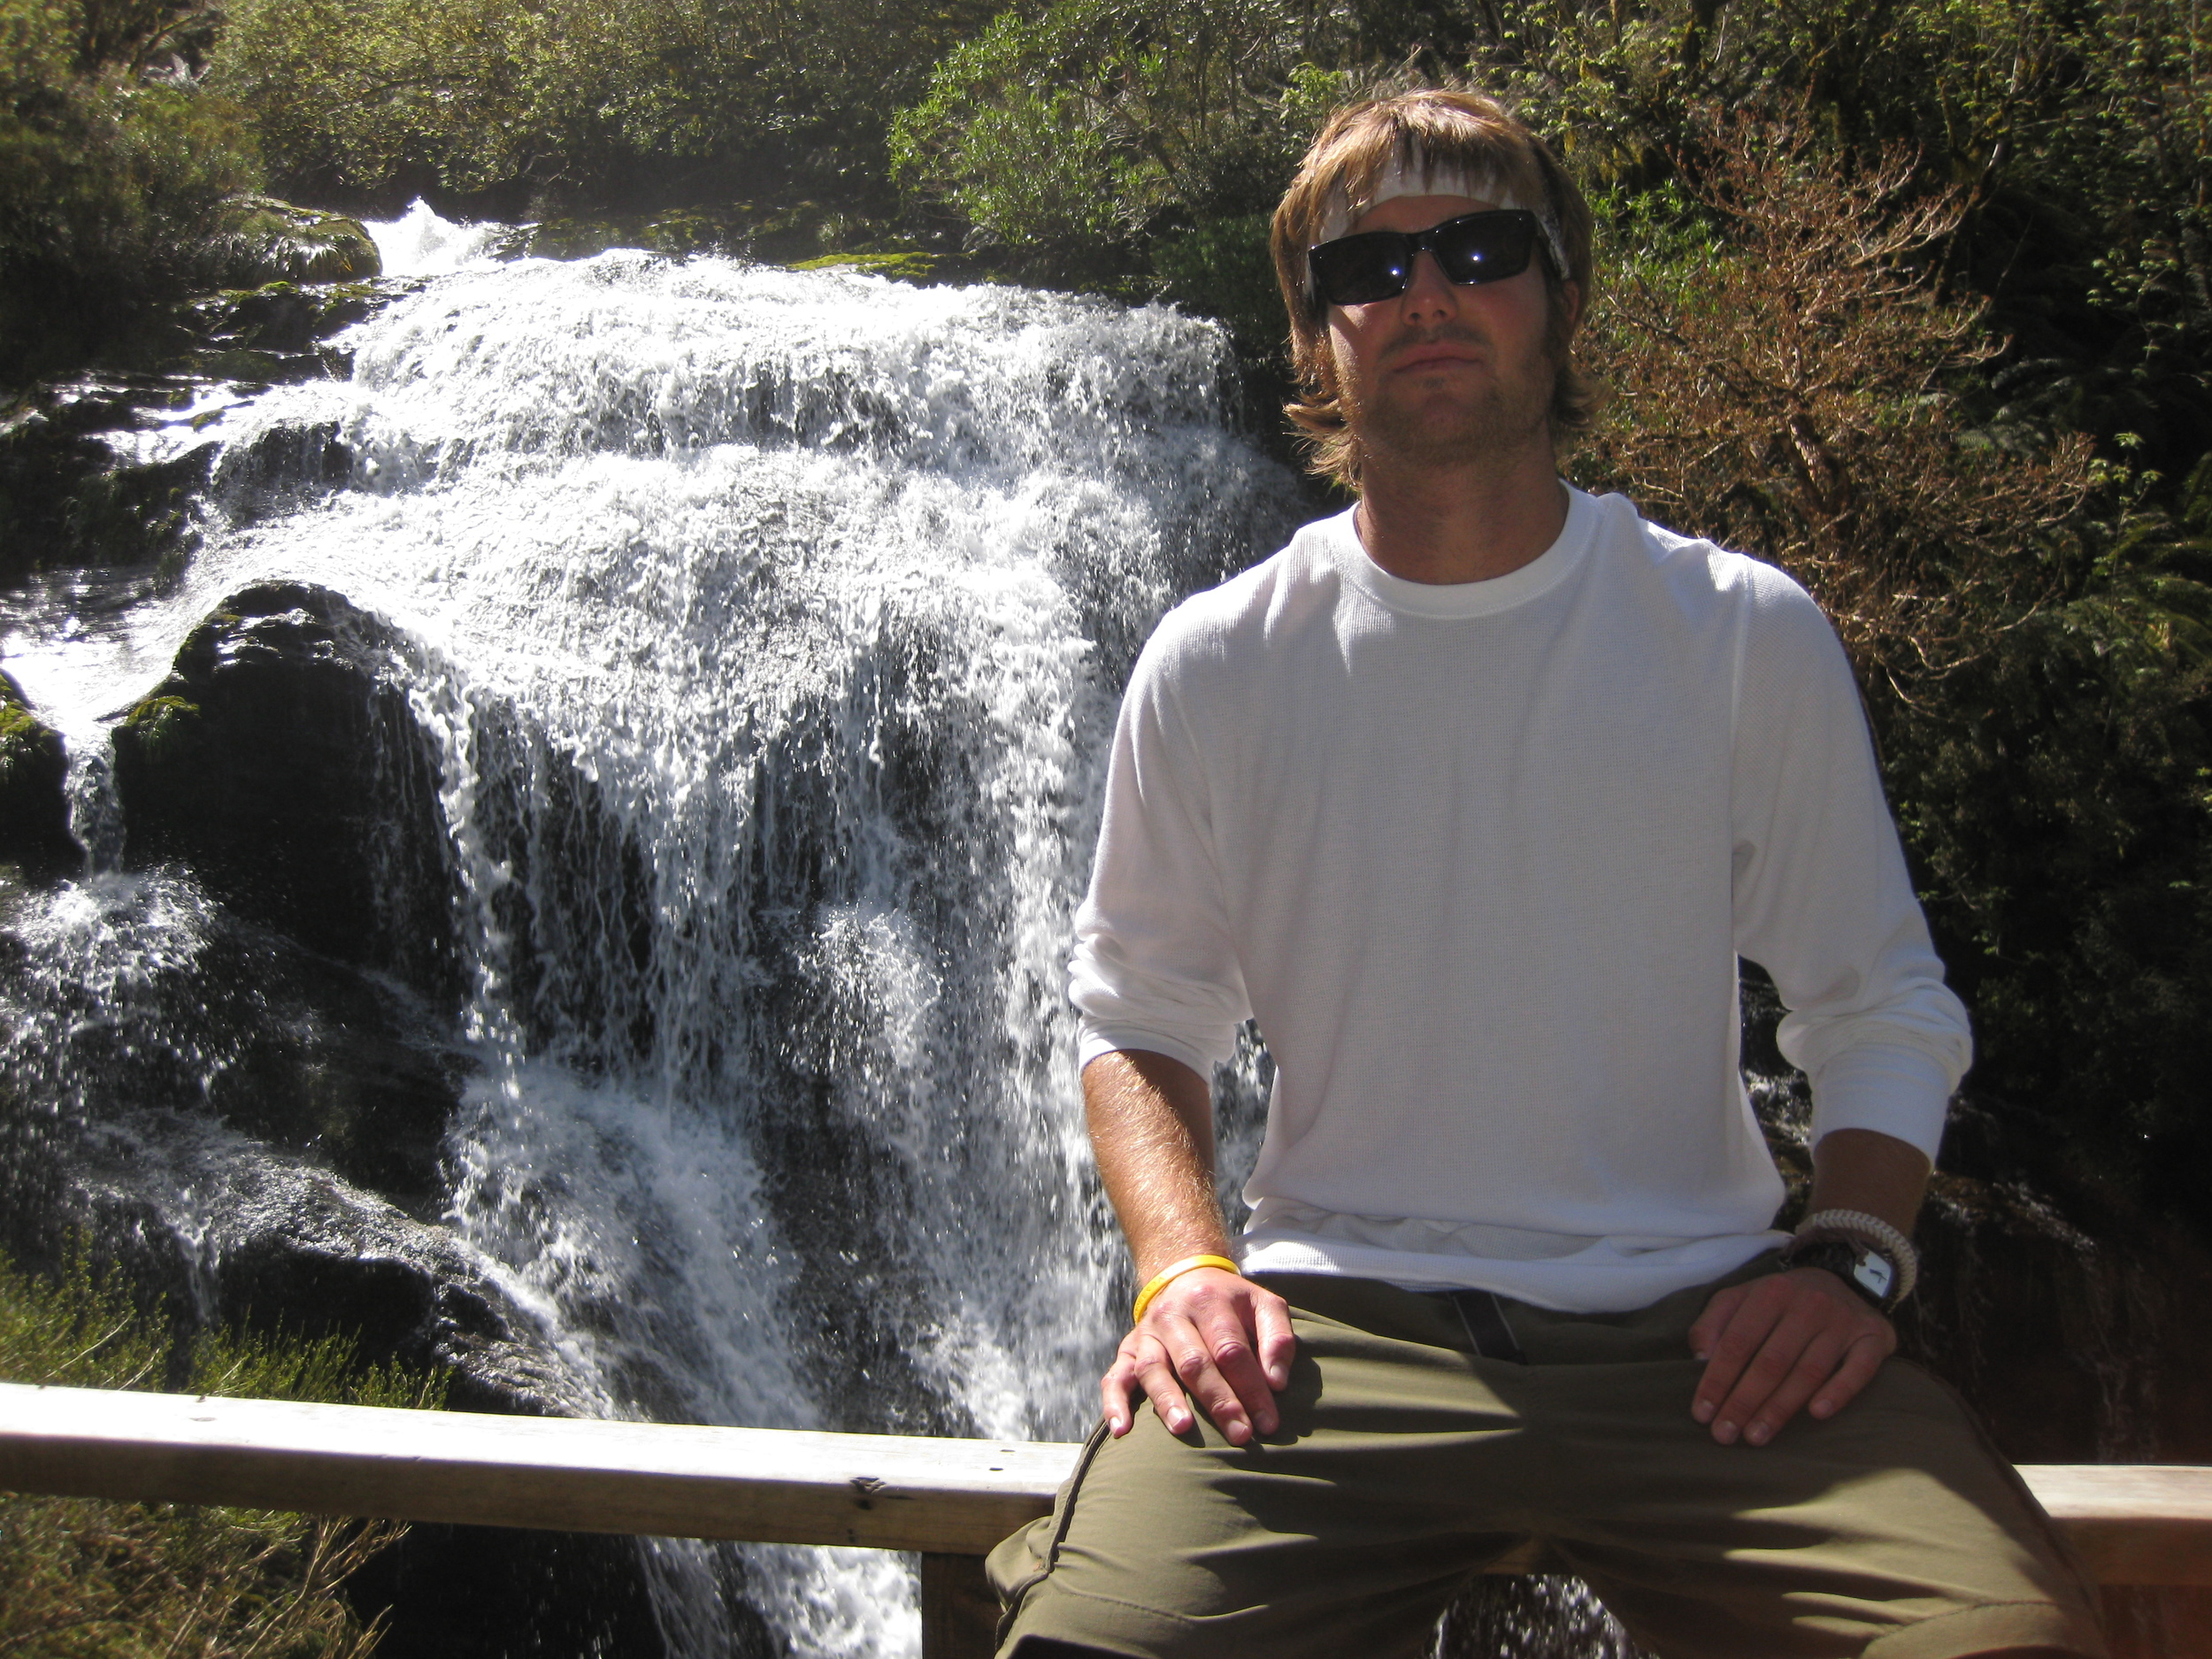 TBT to 2008 on the Milford Track in New Zealand